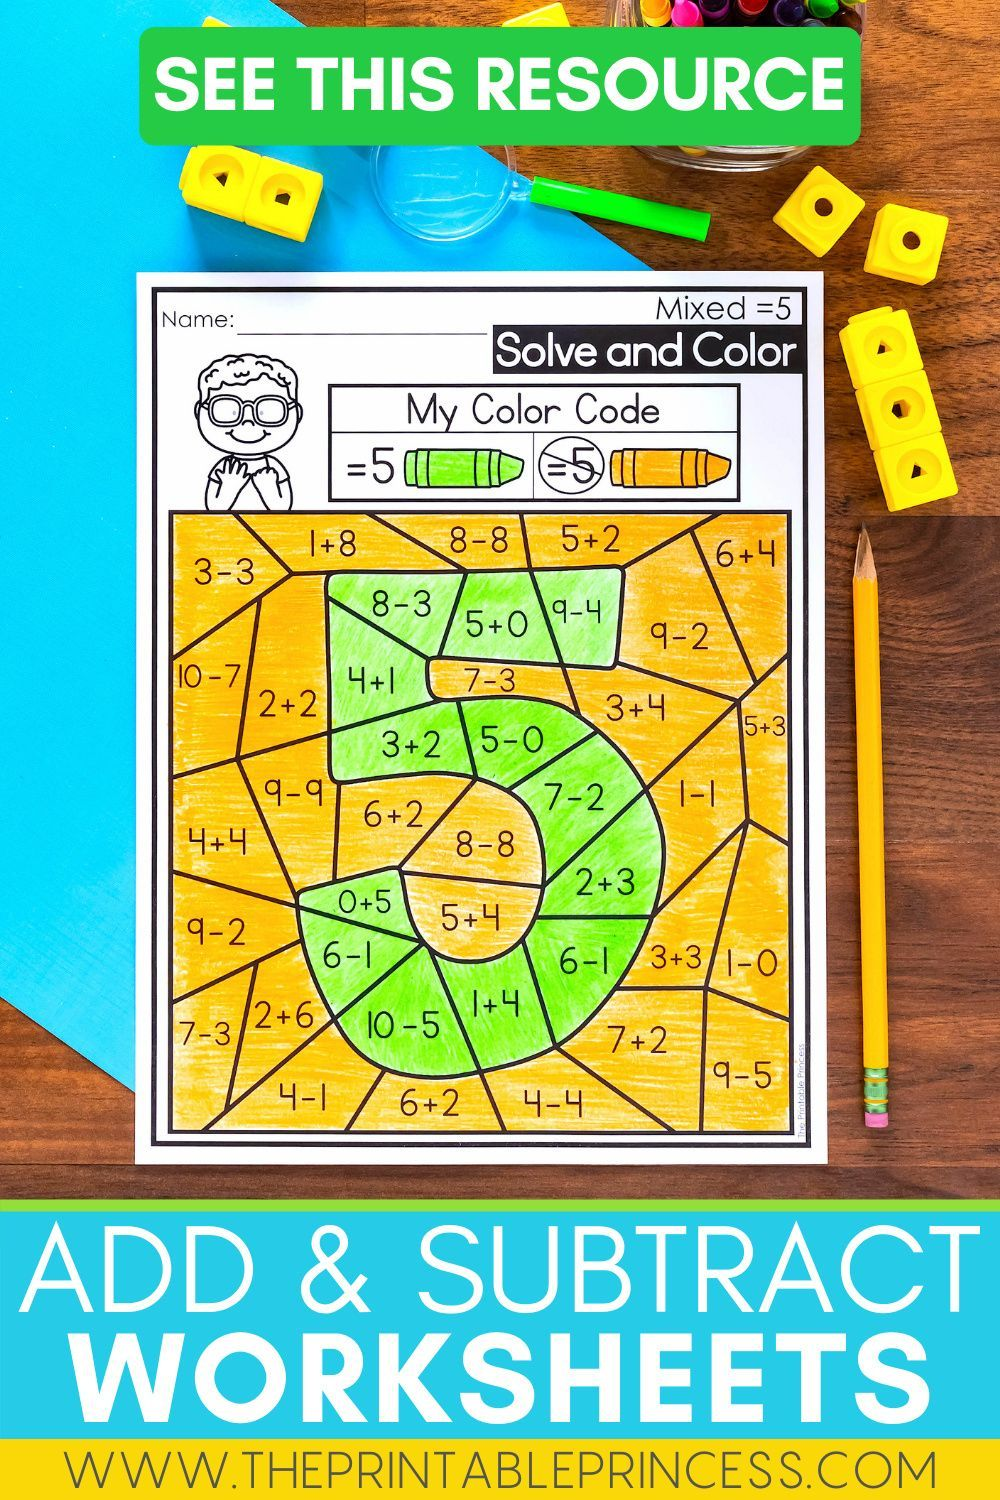 Missing Digits In Addition And Subtraction Problems Kindergarten Math Worksheets Addition Addition And Subtraction Math Addition Worksheets